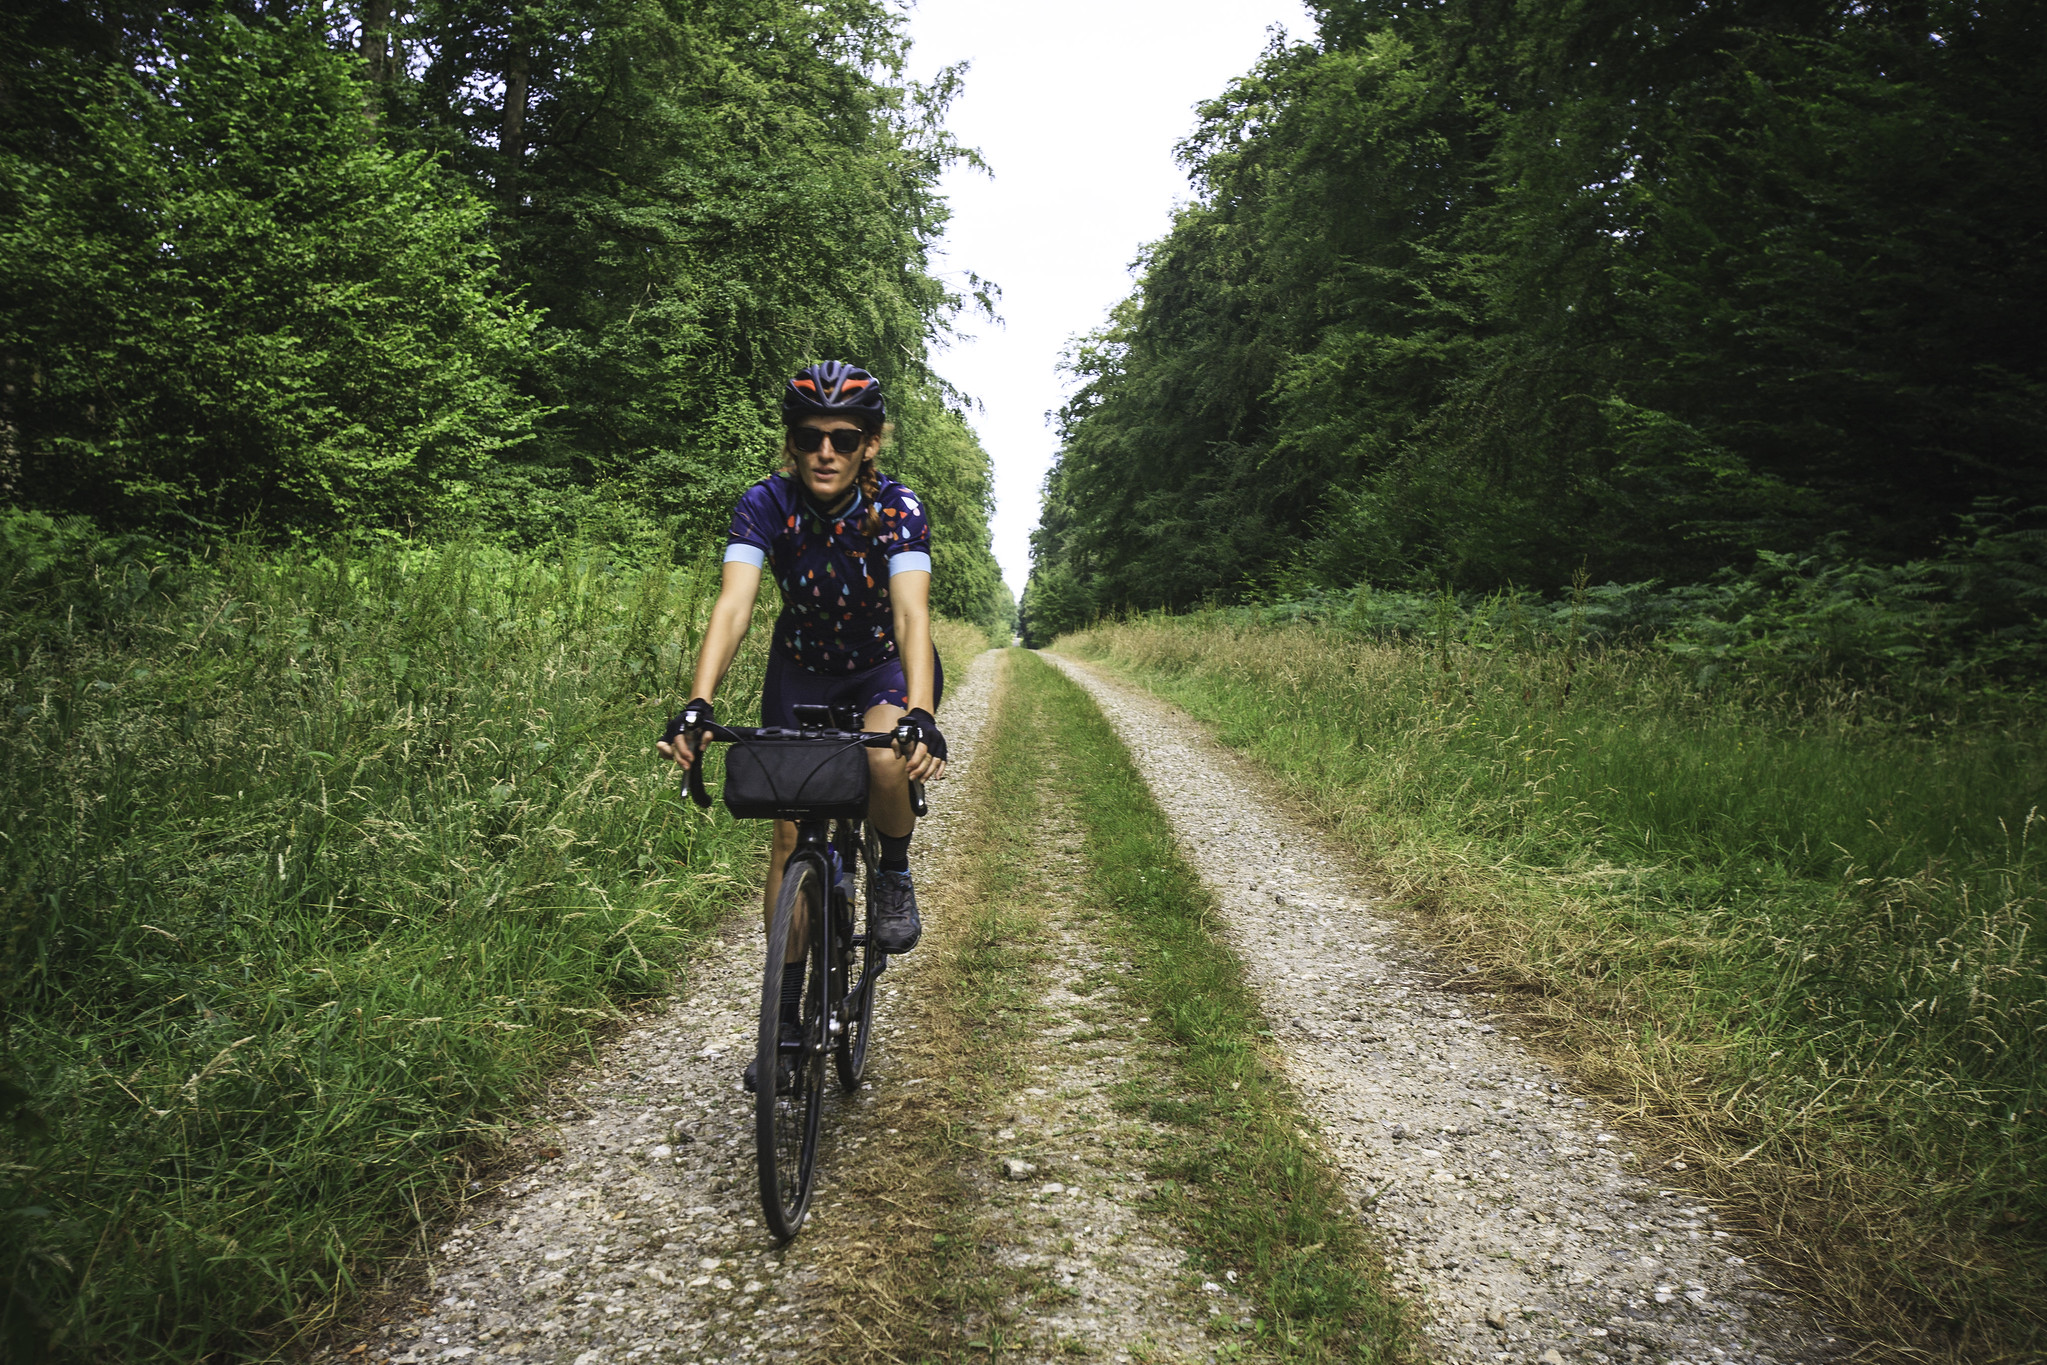 Vanya riding a perfect gravel road through the lush , wild forests of Normandy, France.